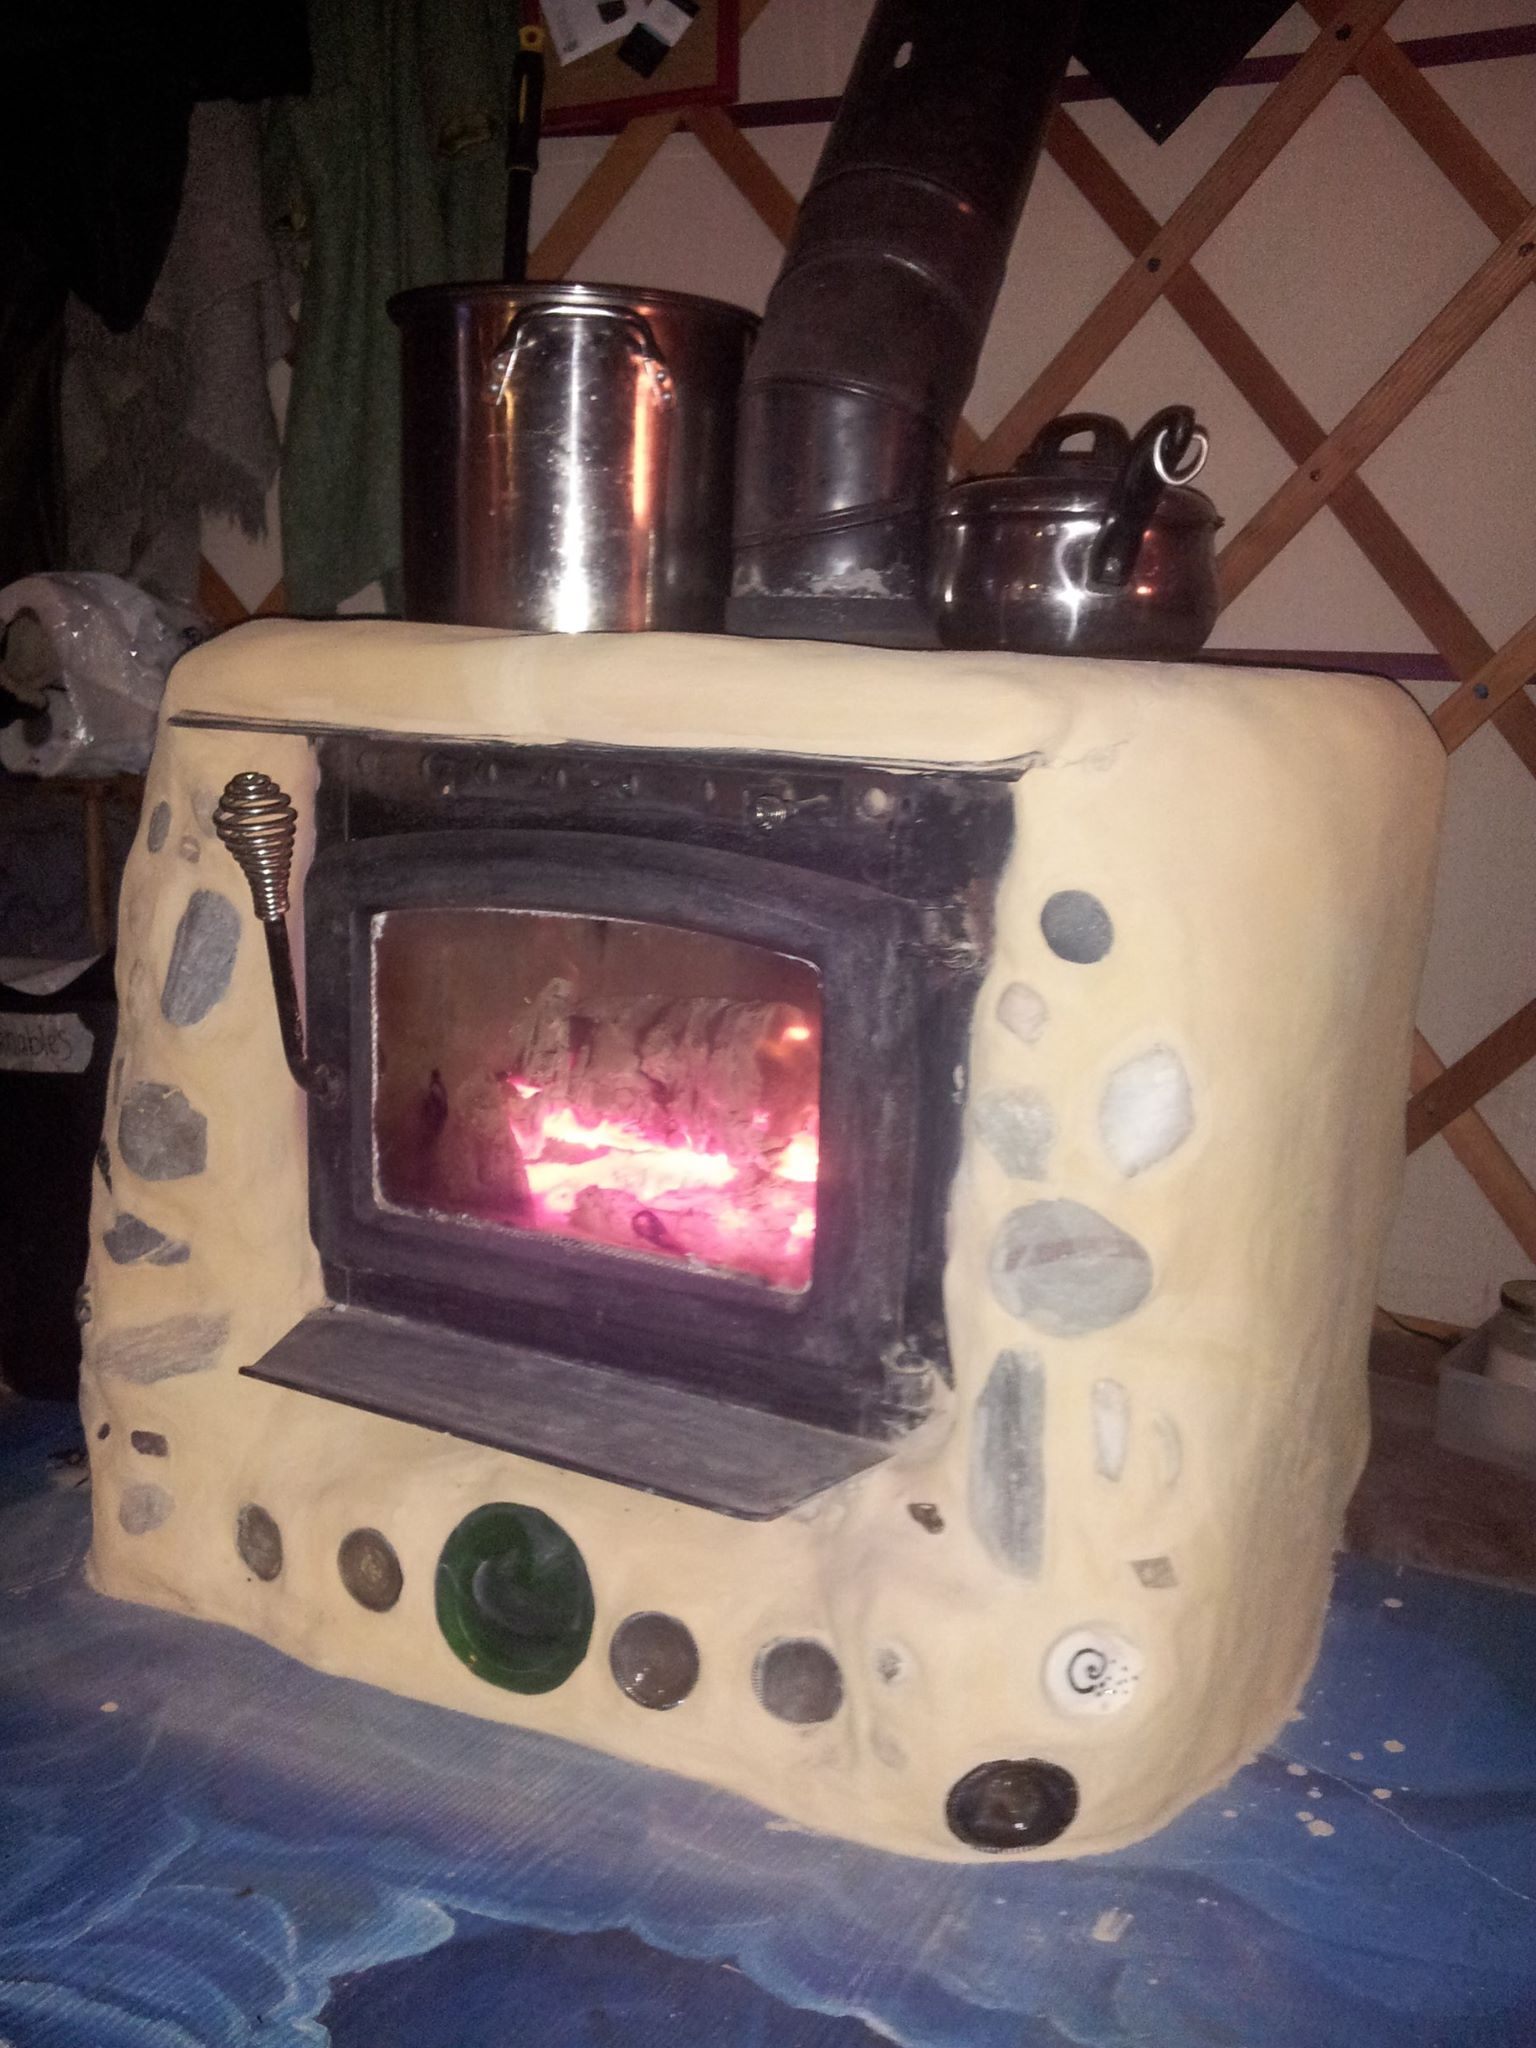 cobbing the stove, making the yurt even more cozy